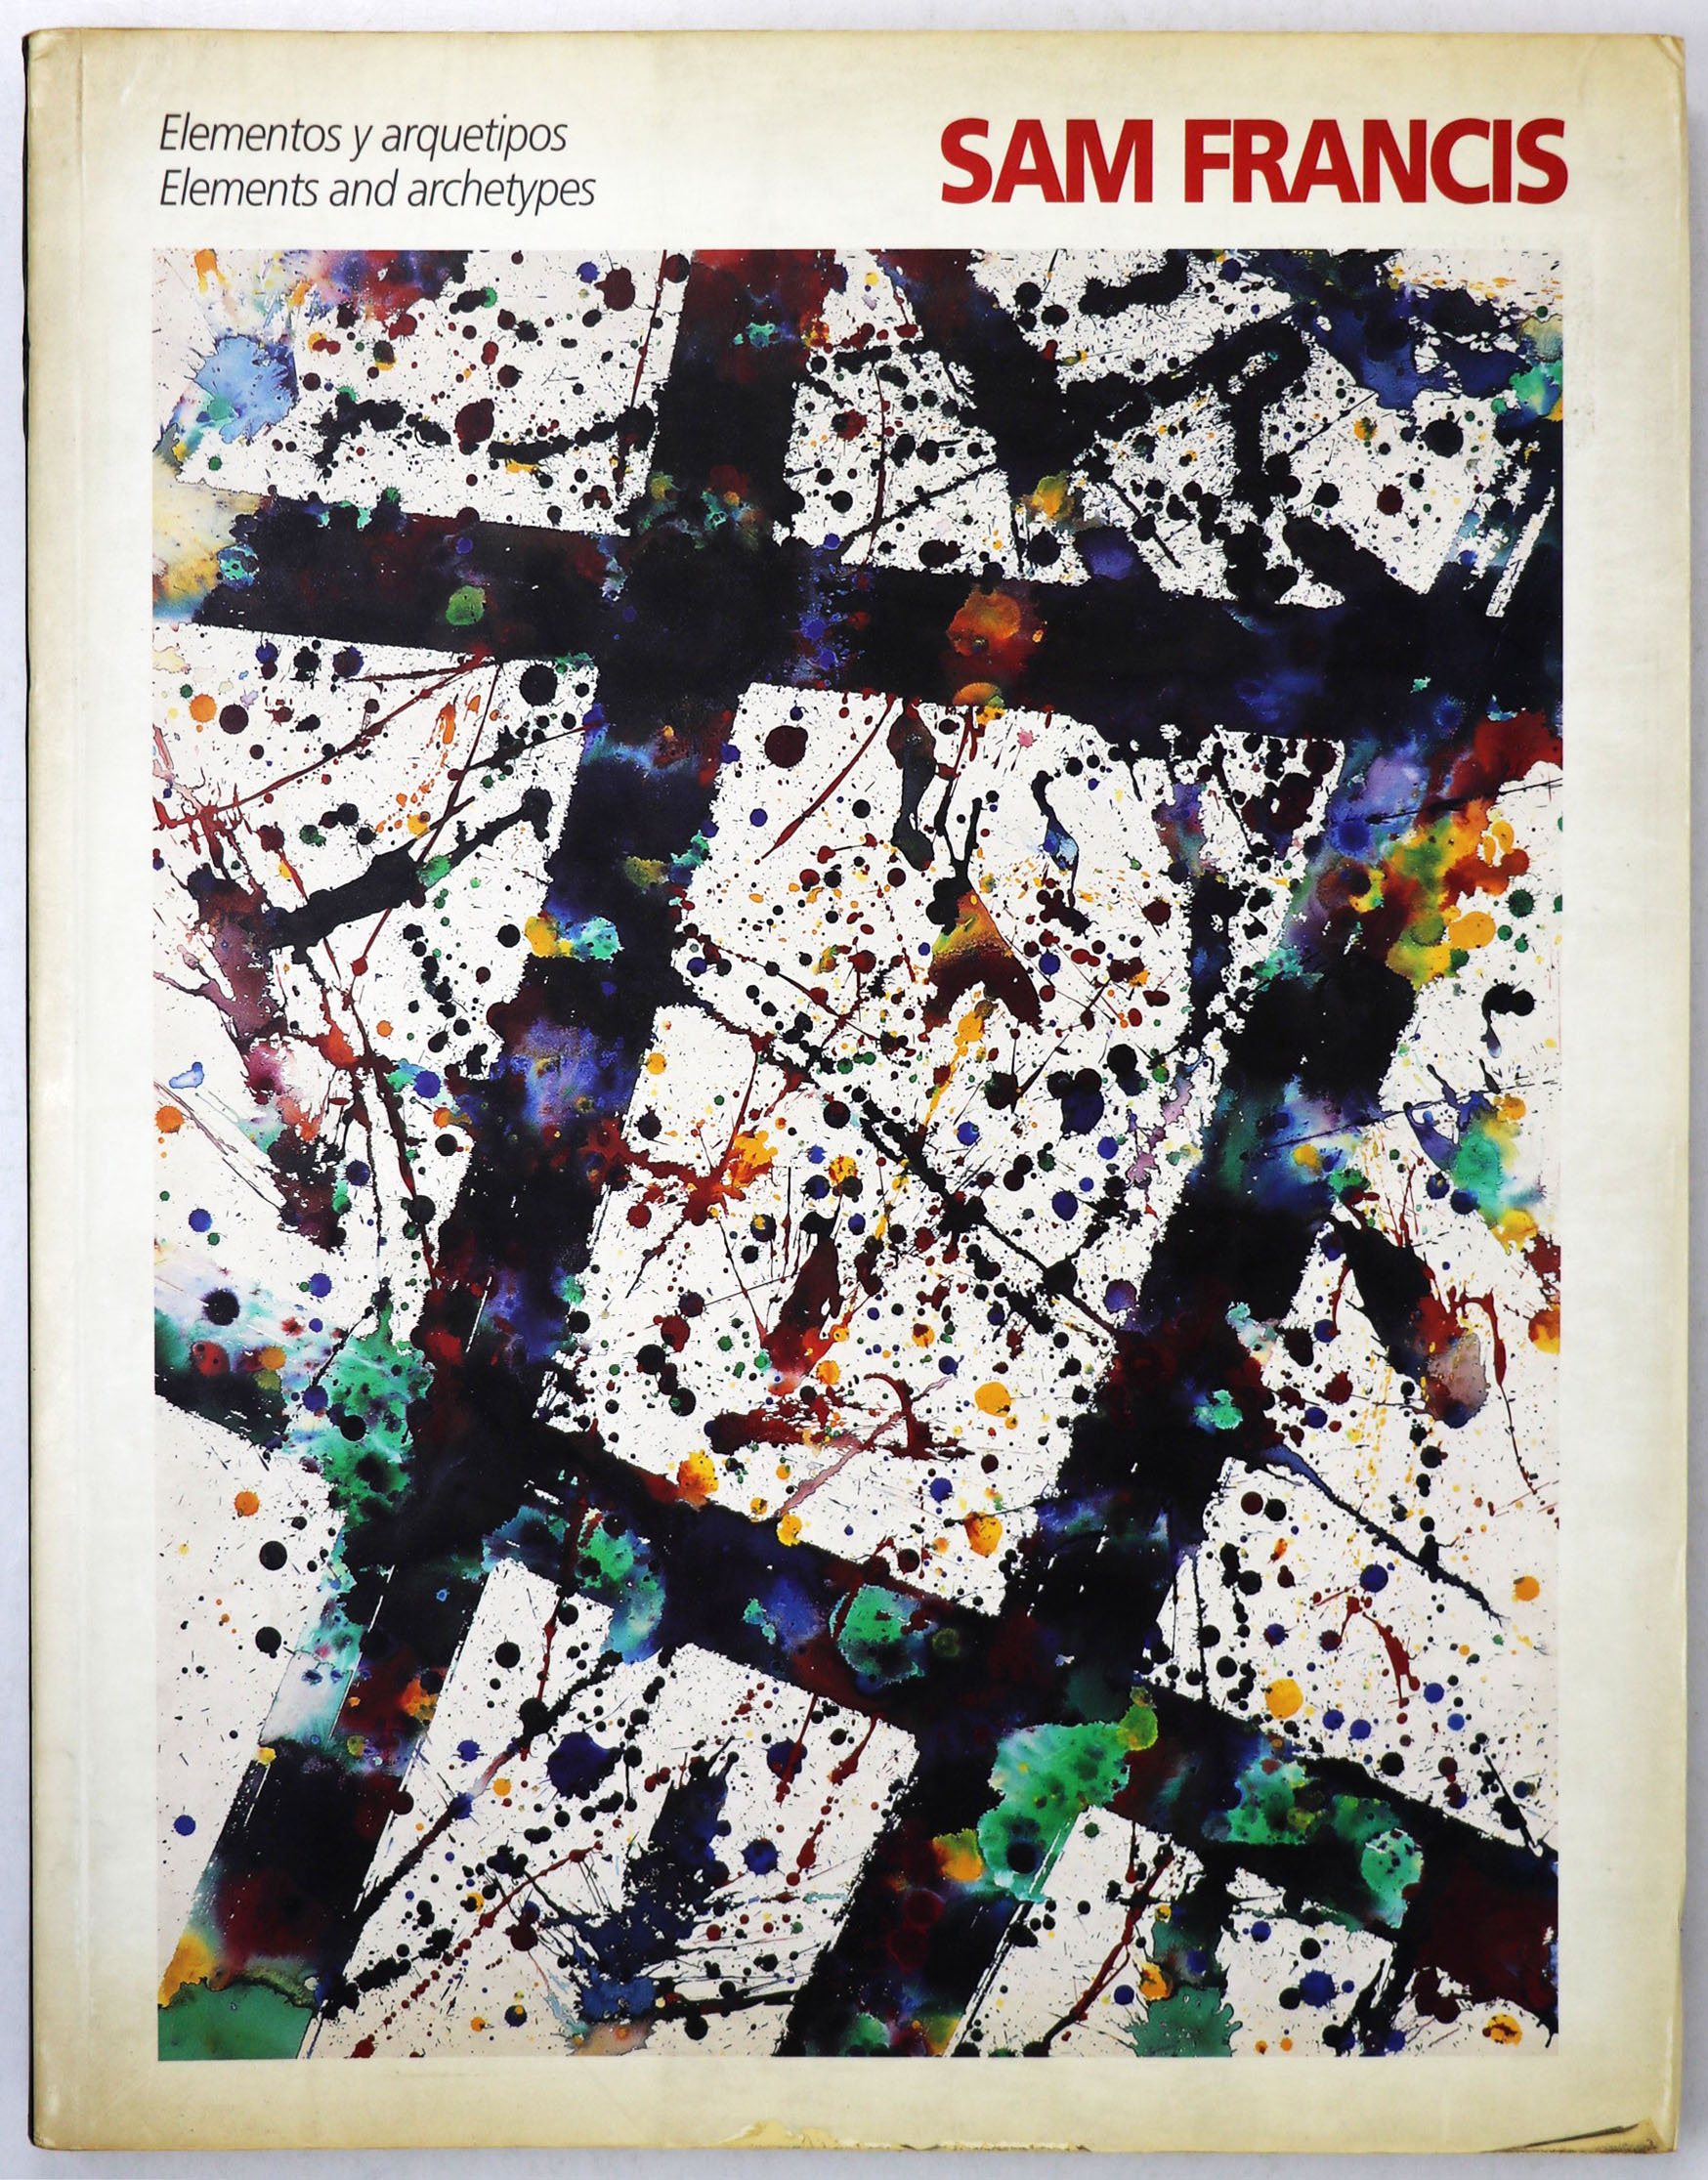 Sam Francis: Elements and Archetypes